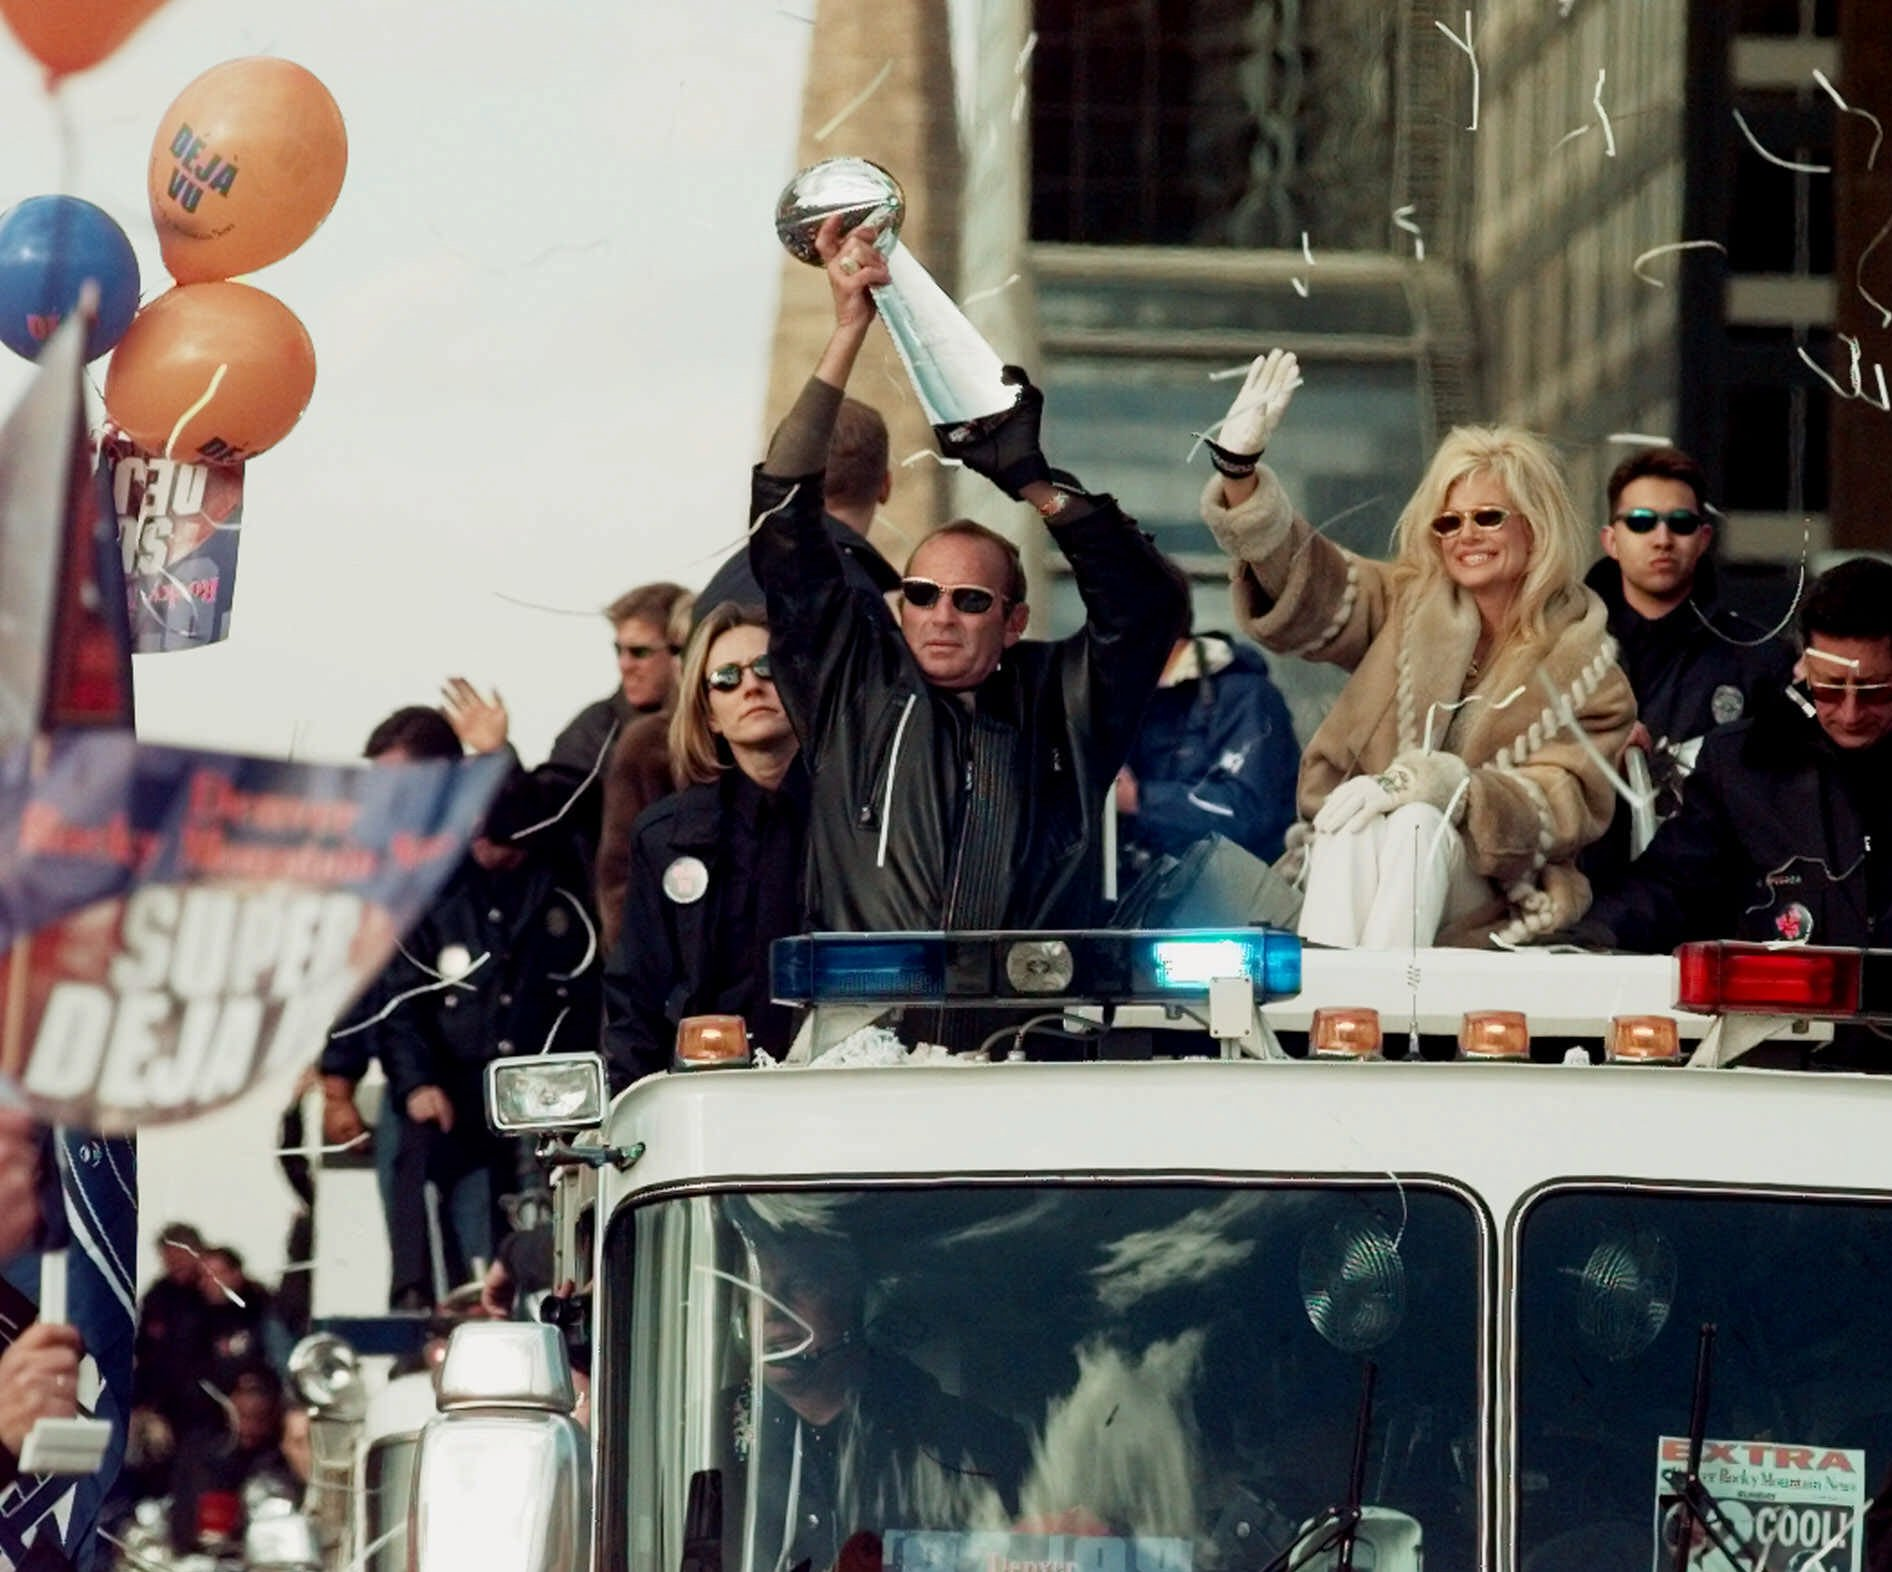 <p>Denver Broncos owner Pat Bowlen holds the Vince Lombardi Super Bowl trophy over his head and his wife, Annabelle, right, waves, as they ride a fire truck through downtown Denver in a victory parade on Monday, Feb. 1, 1999.</p>